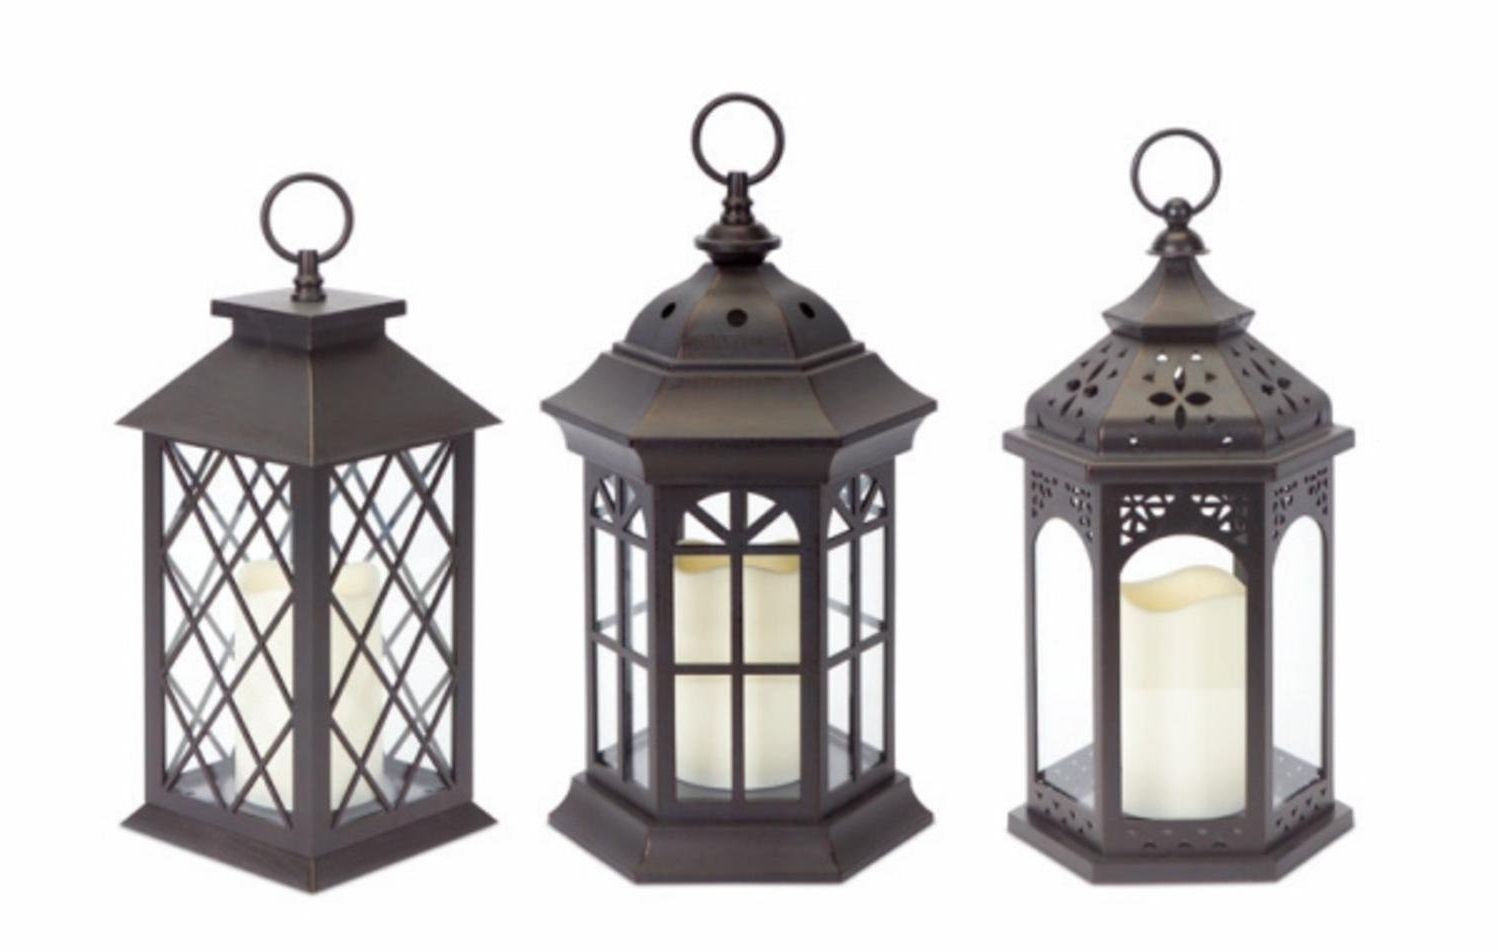 Cheap Outdoor Lanterns Candle, Find Outdoor Lanterns Candle Deals On Intended For Most Popular Jumbo Outdoor Lanterns (View 2 of 20)